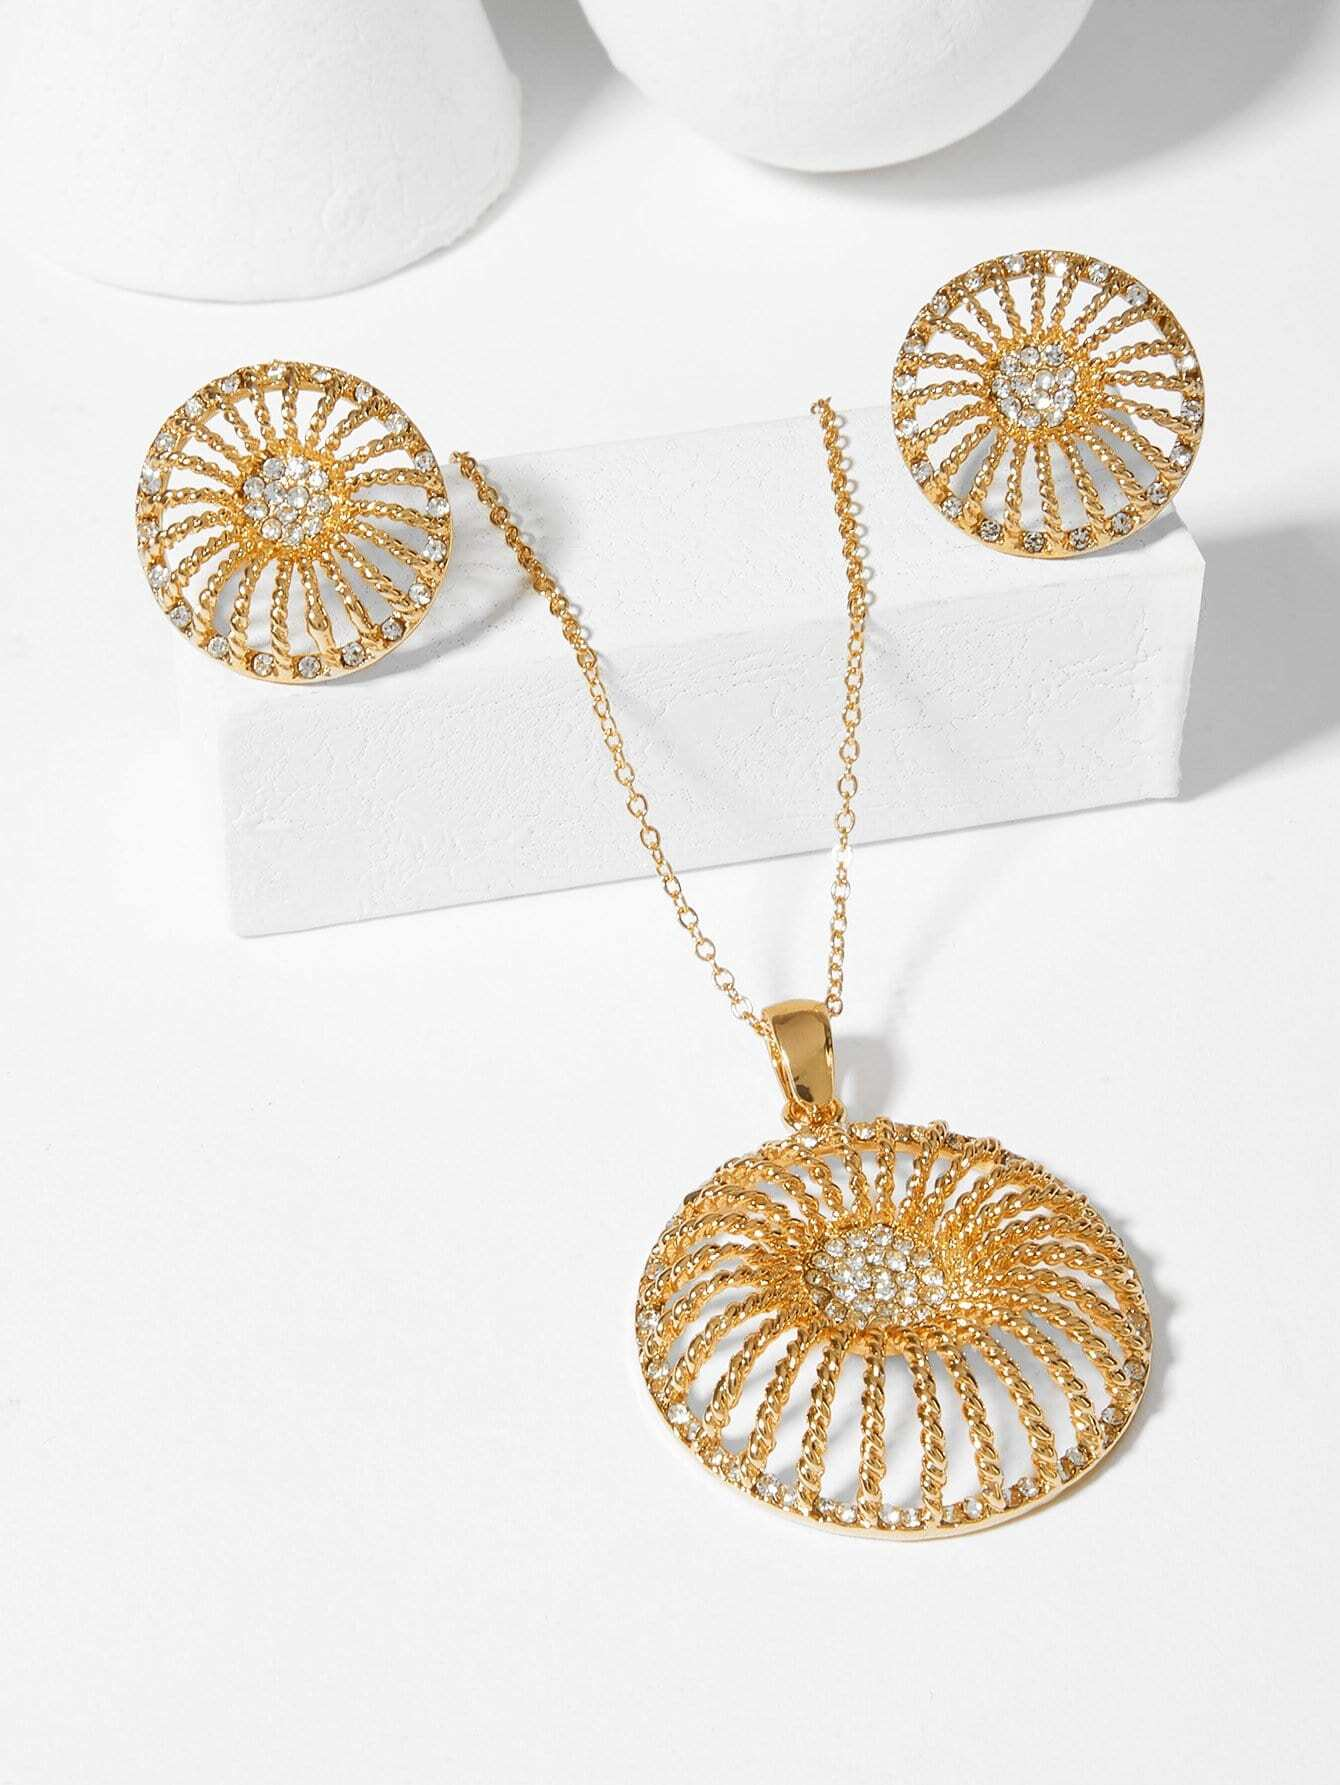 Hollow Round Pendant Necklace & Earrings